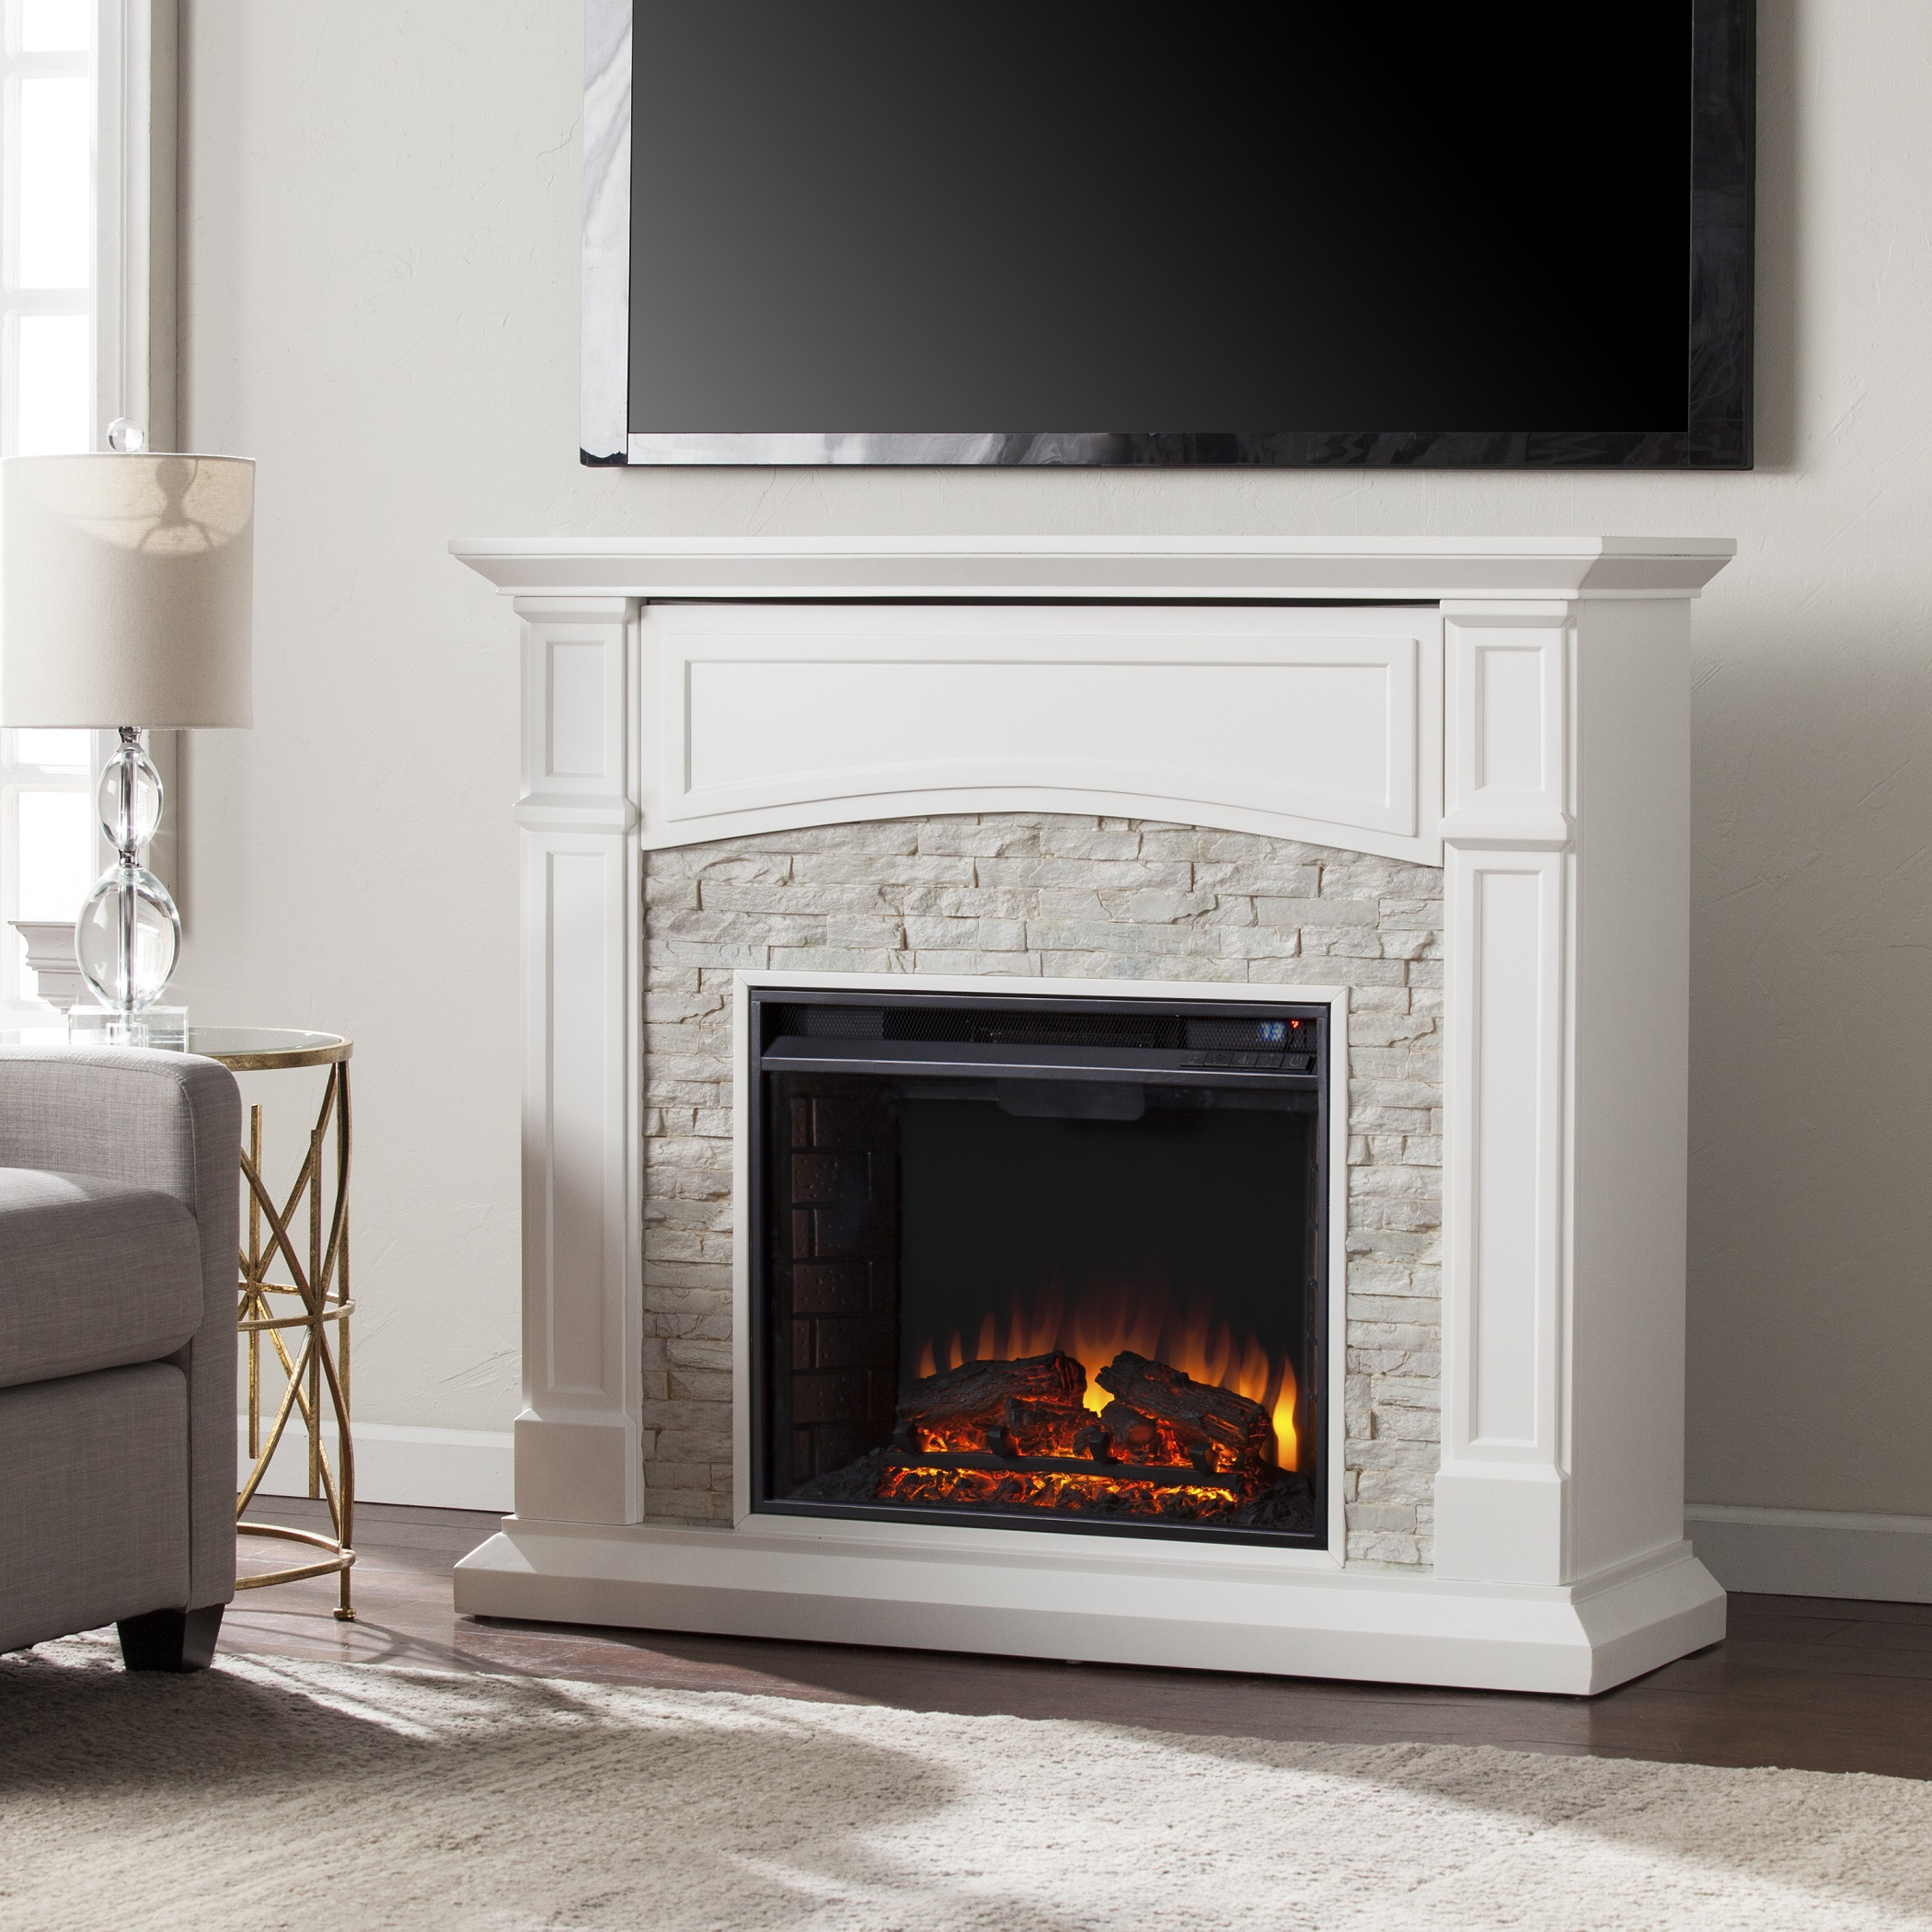 4575 Seneca Electric Media Fireplace White w White Faux Stone